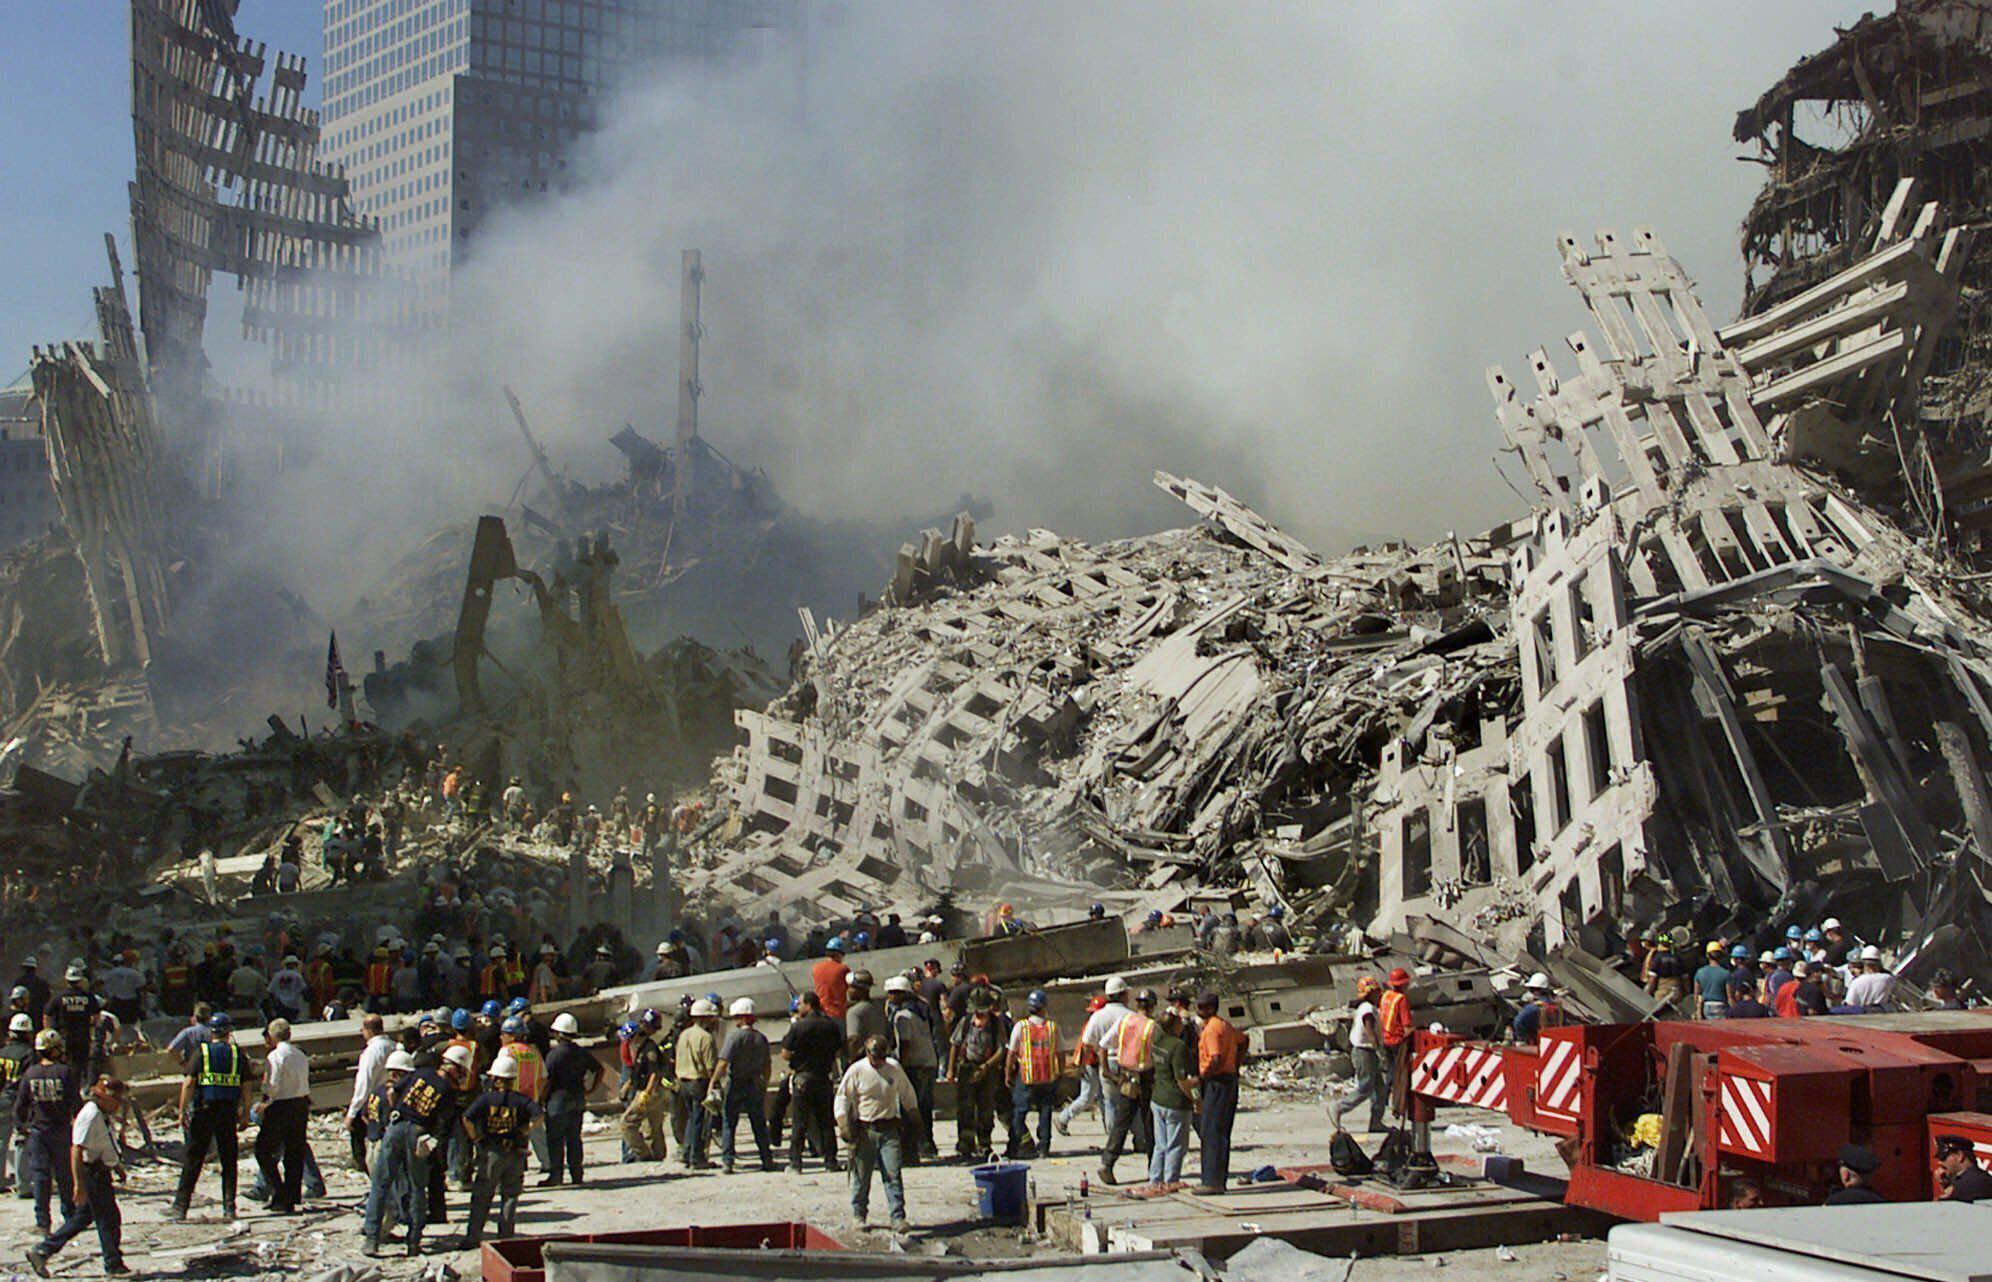 FILE - In this Thursday, Sept. 13, 2001 file photo, rescue workers continue their search as smoke rises from the rubble of the World Trade Center in New York. Twenty years on, the skepticism and suspicion first revealed by 9/11 conspiracy theories has metastasized, spread by the internet and nurtured by pundits and politicians like Donald Trump. One hoax after another has emerged, each more bizarre than the last: birtherism. Pizzagate. QAnon. (AP Photo/Beth A. Keiser, File)